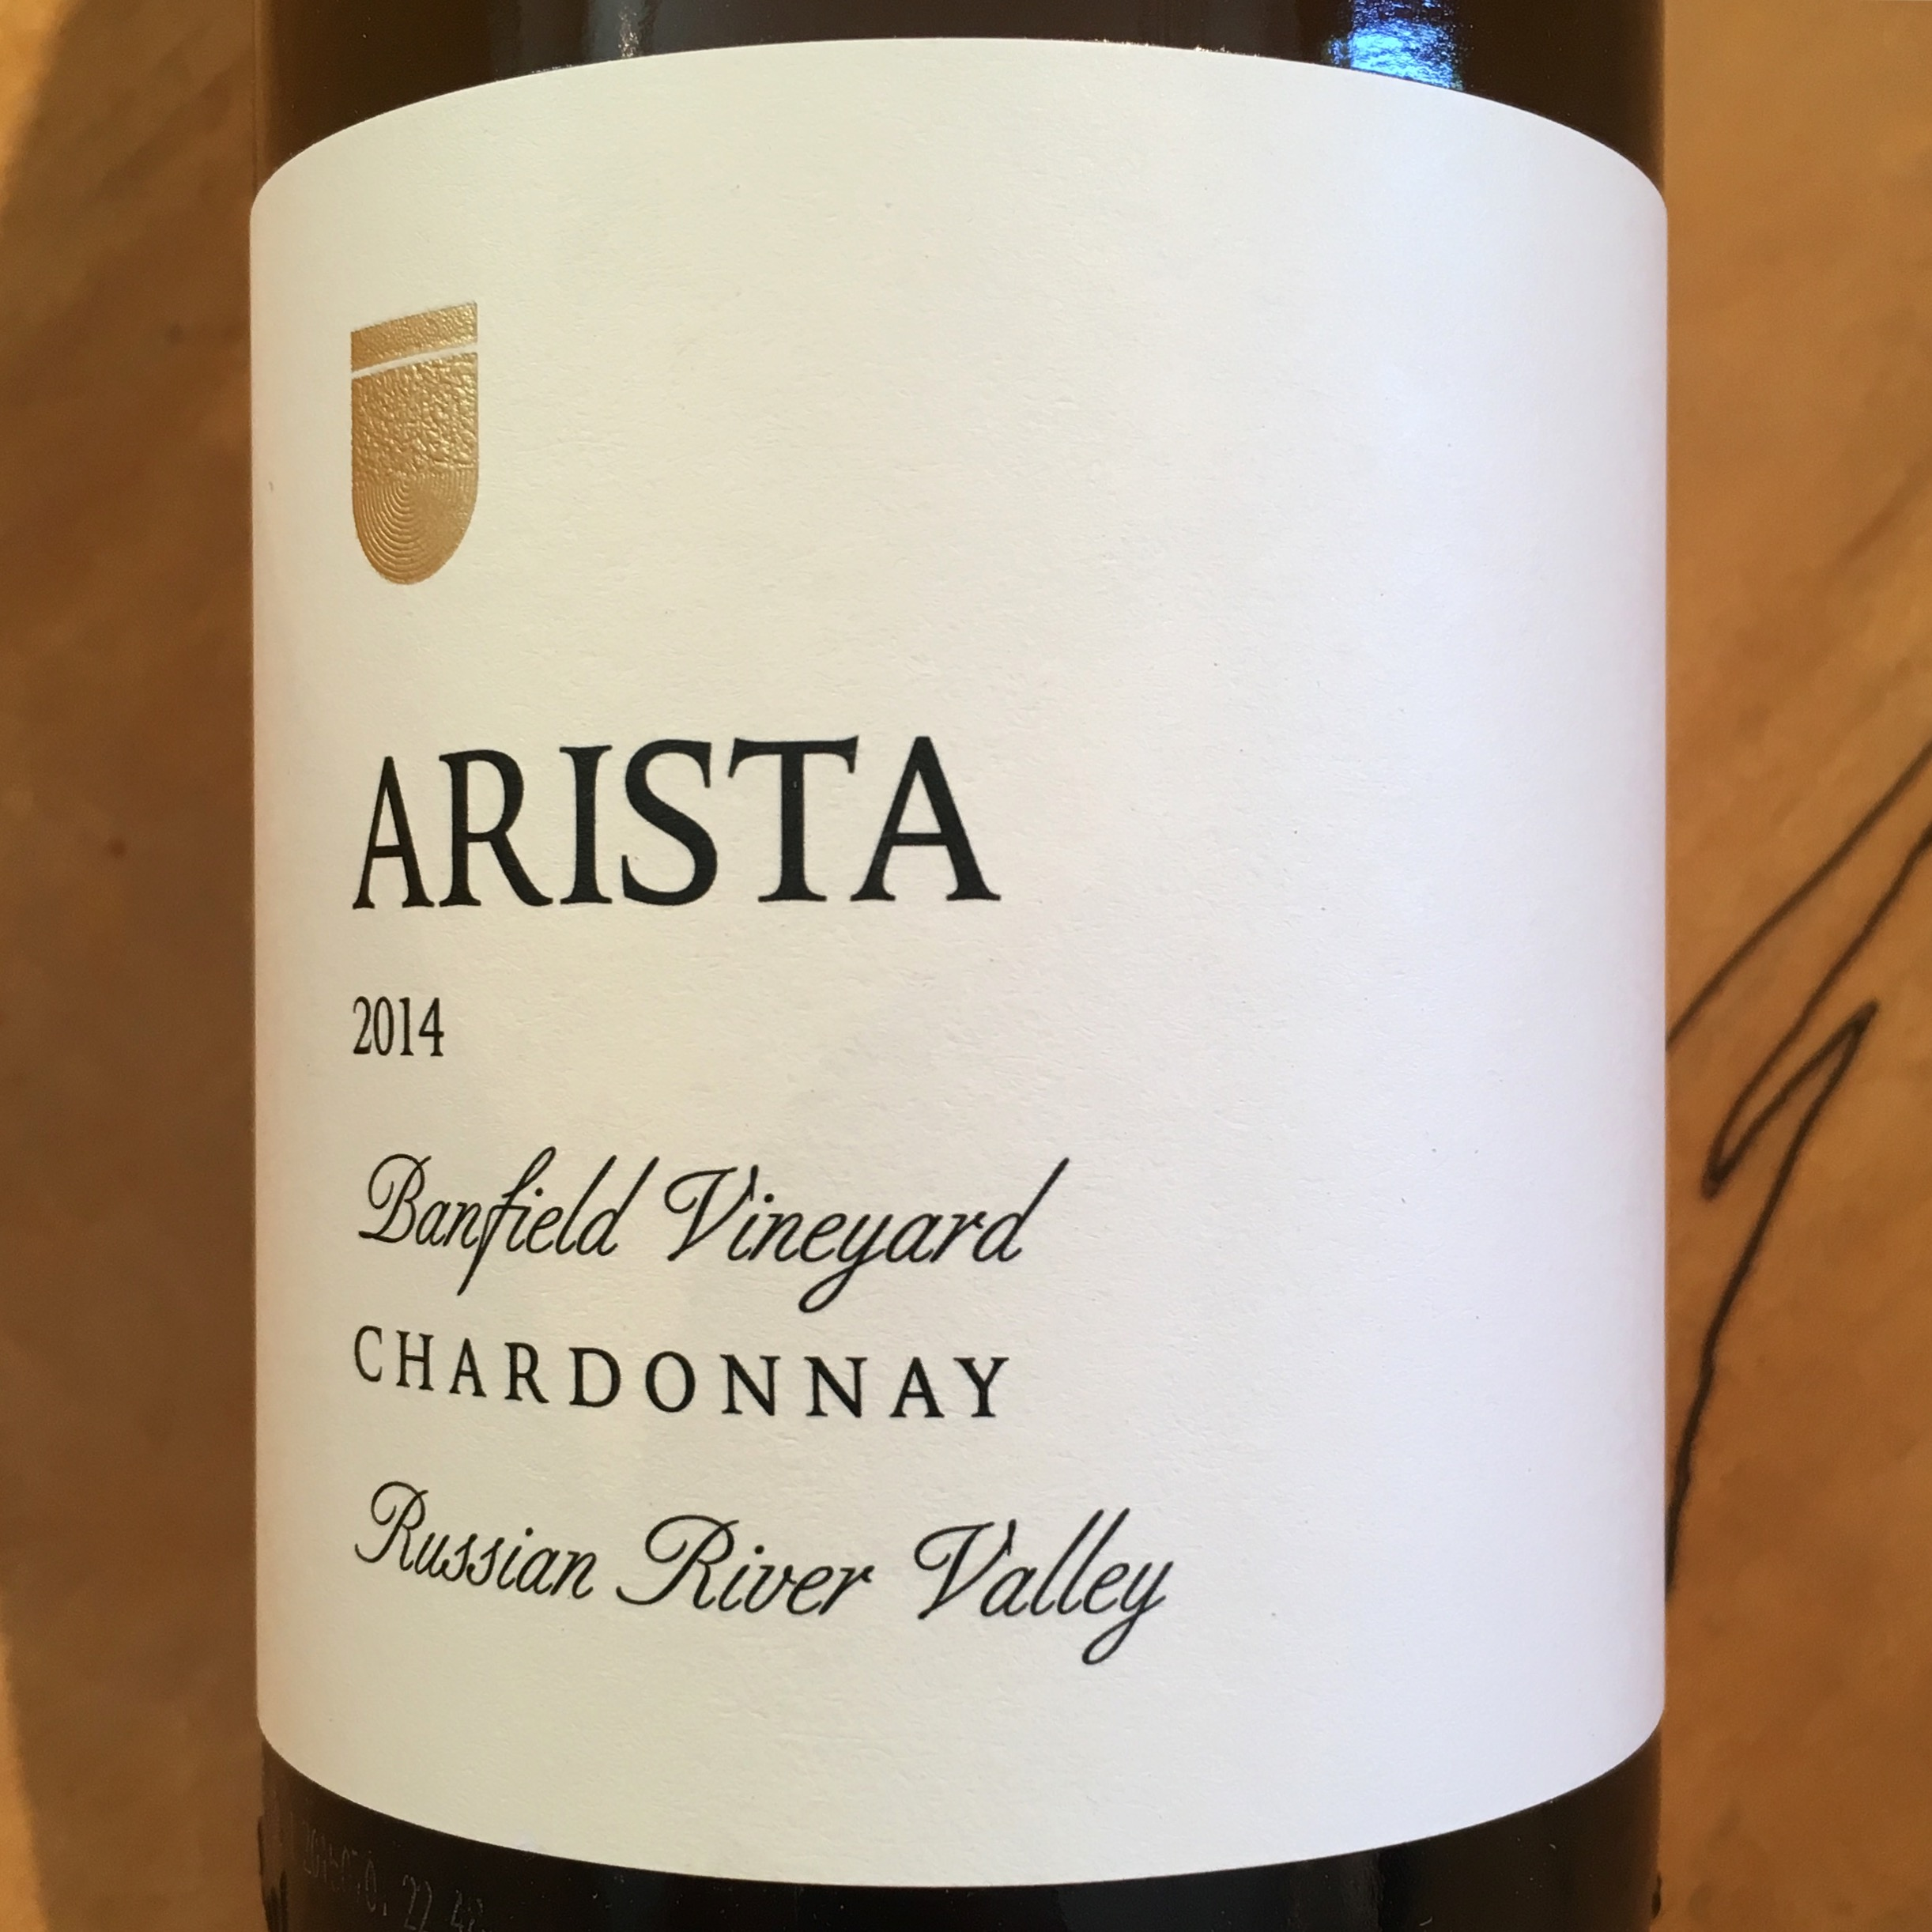 Arista Banfield Vineyard Chardonnay 2014 Russian River Valley - K. Laz Wine Collection